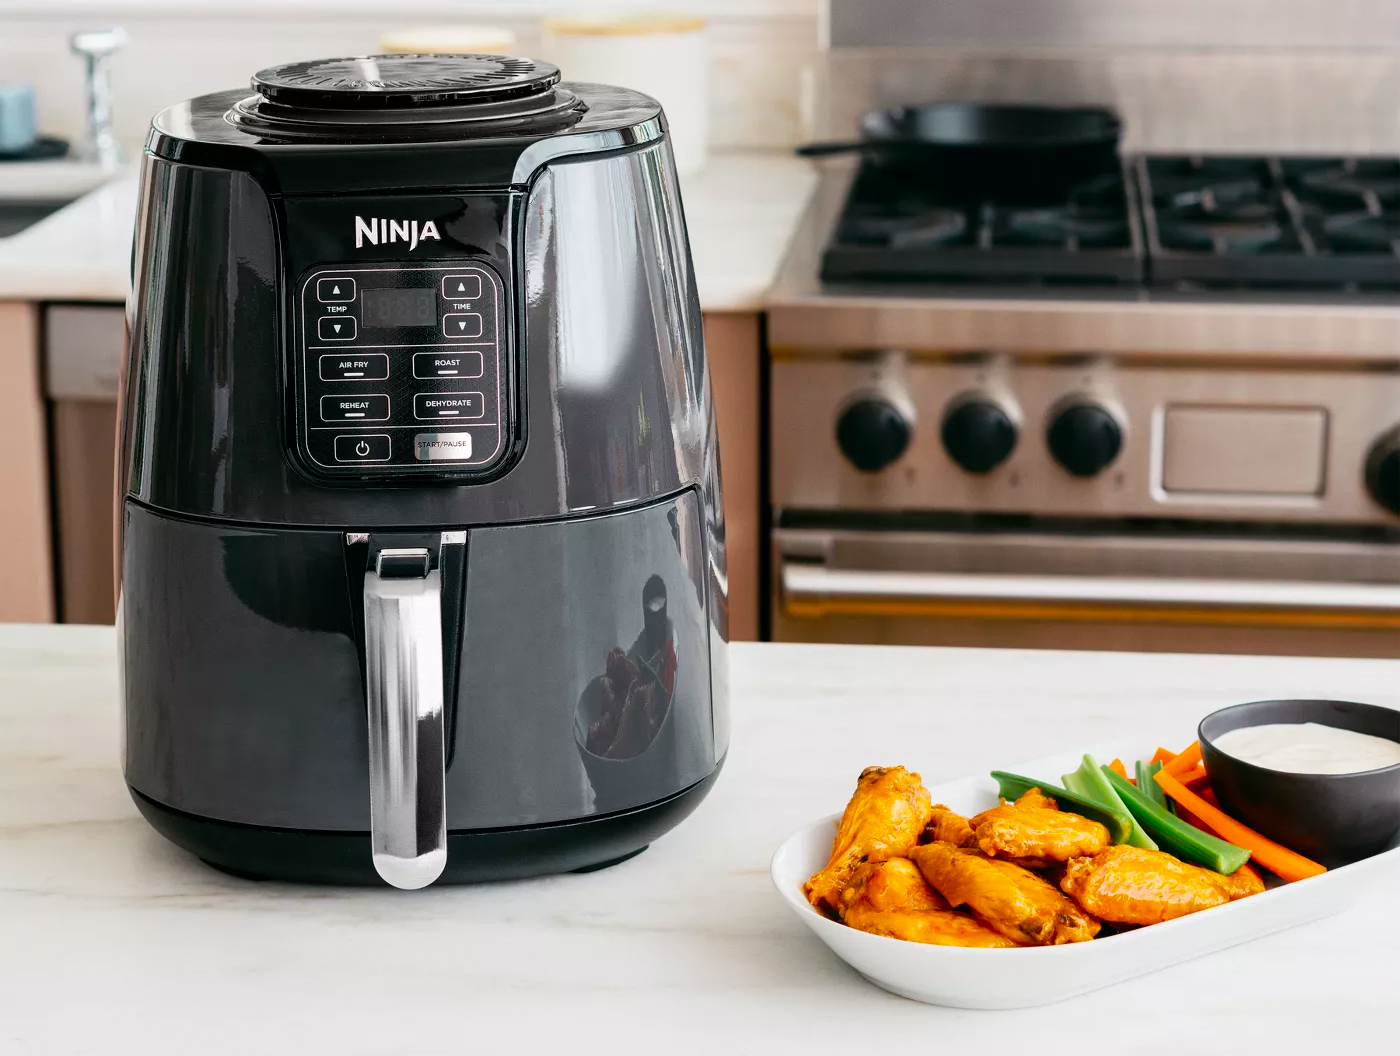 cheap-ninja-air-fryer-target-black-friday-sale